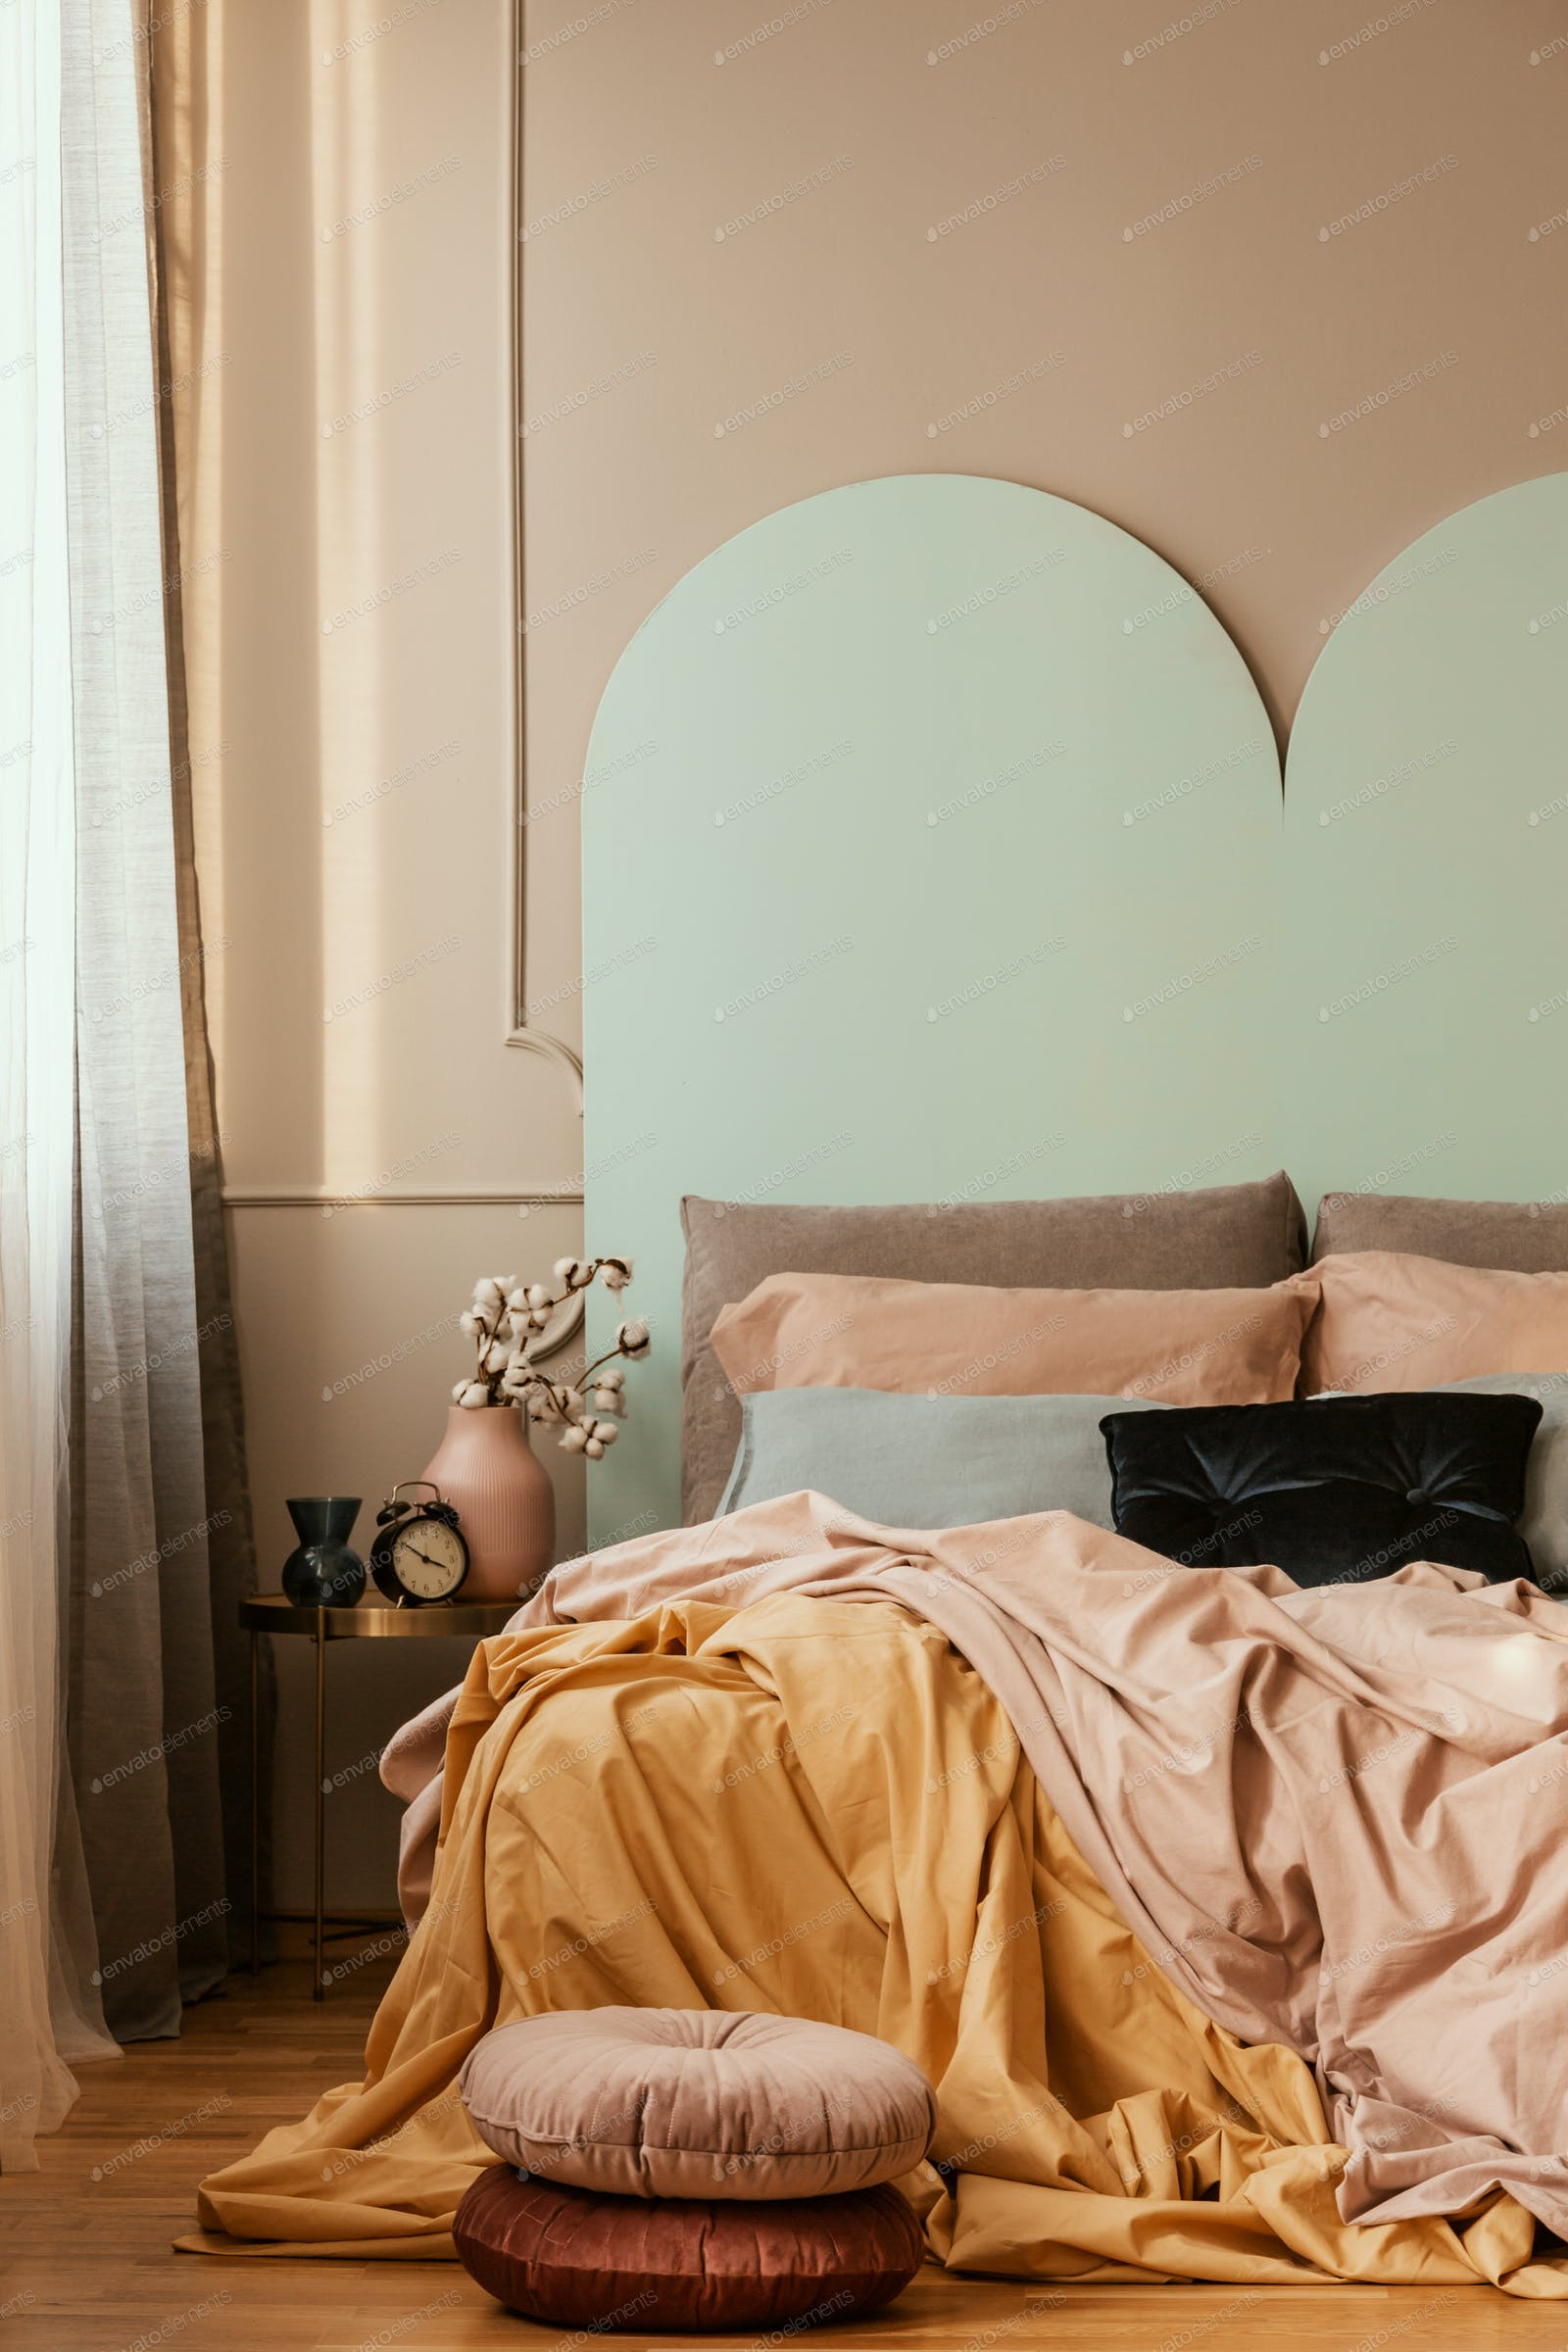 Pastel blue, pink and orange bedding on double bed in chic bedroom interior  photo by bialasiewicz on Envato Elements